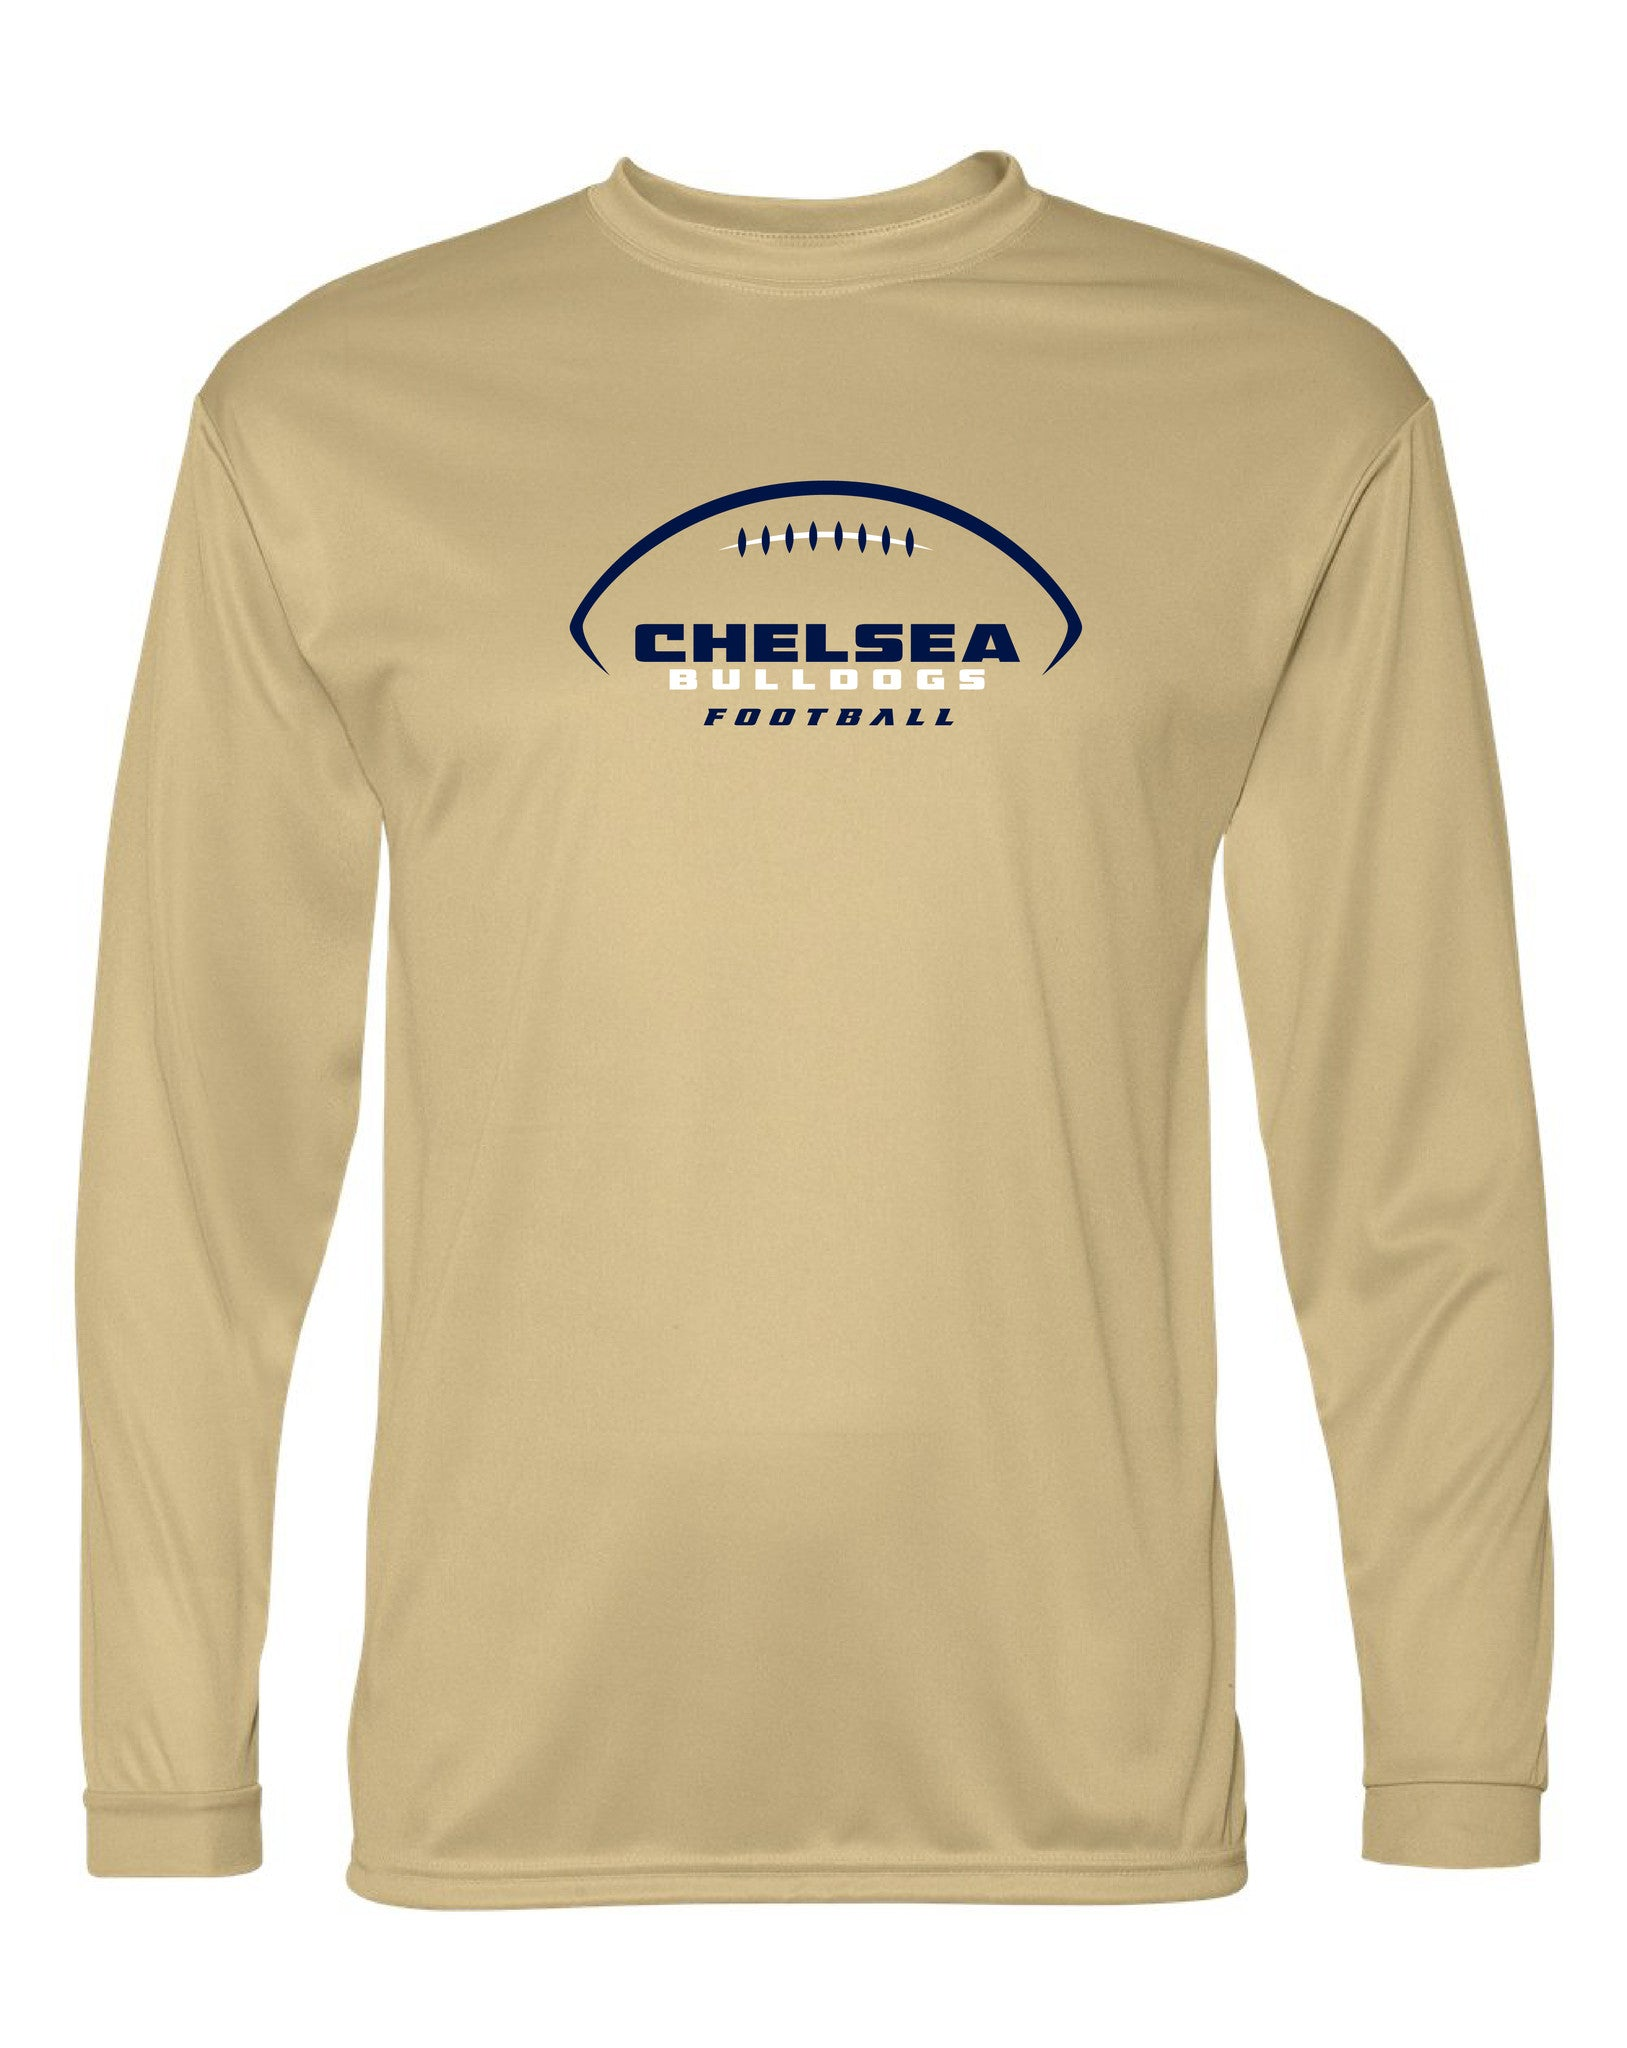 Youth Chelsea Football Long Sleeve Performance Shirt - D009